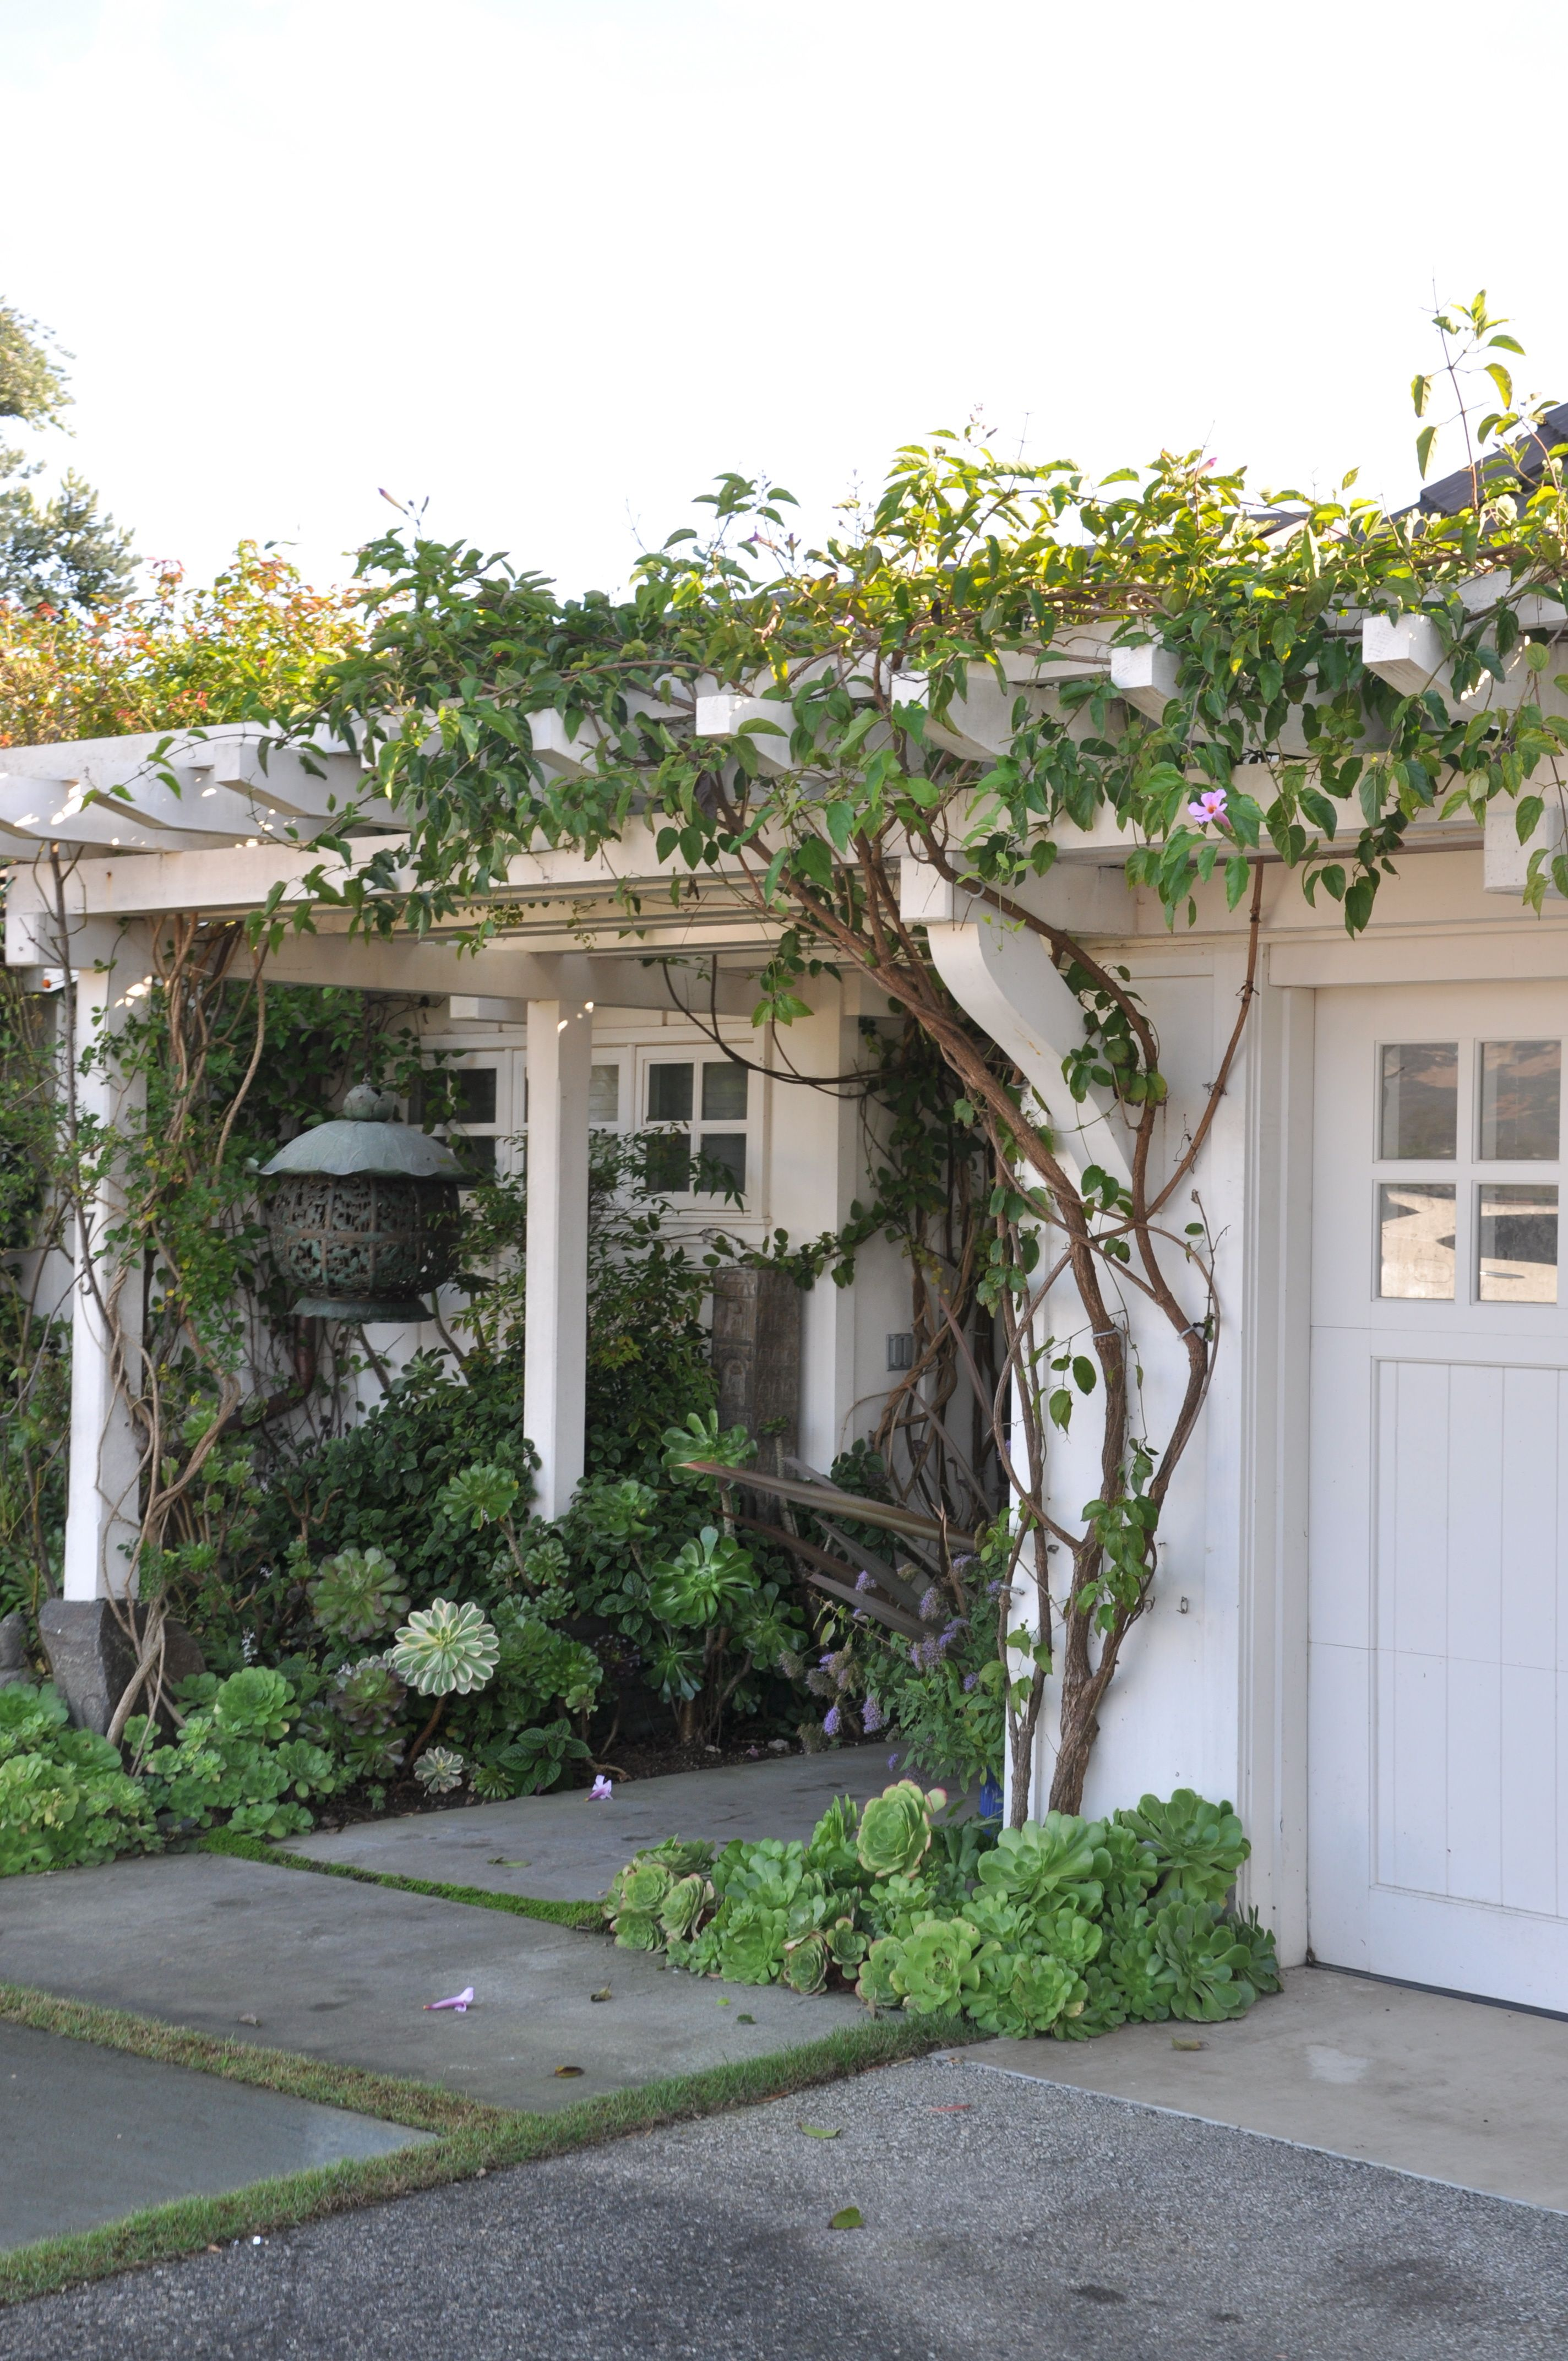 Front Yard Garden With Succulents And Trellis For Climber | | Curb Appeal Entry U0026 Drive ...